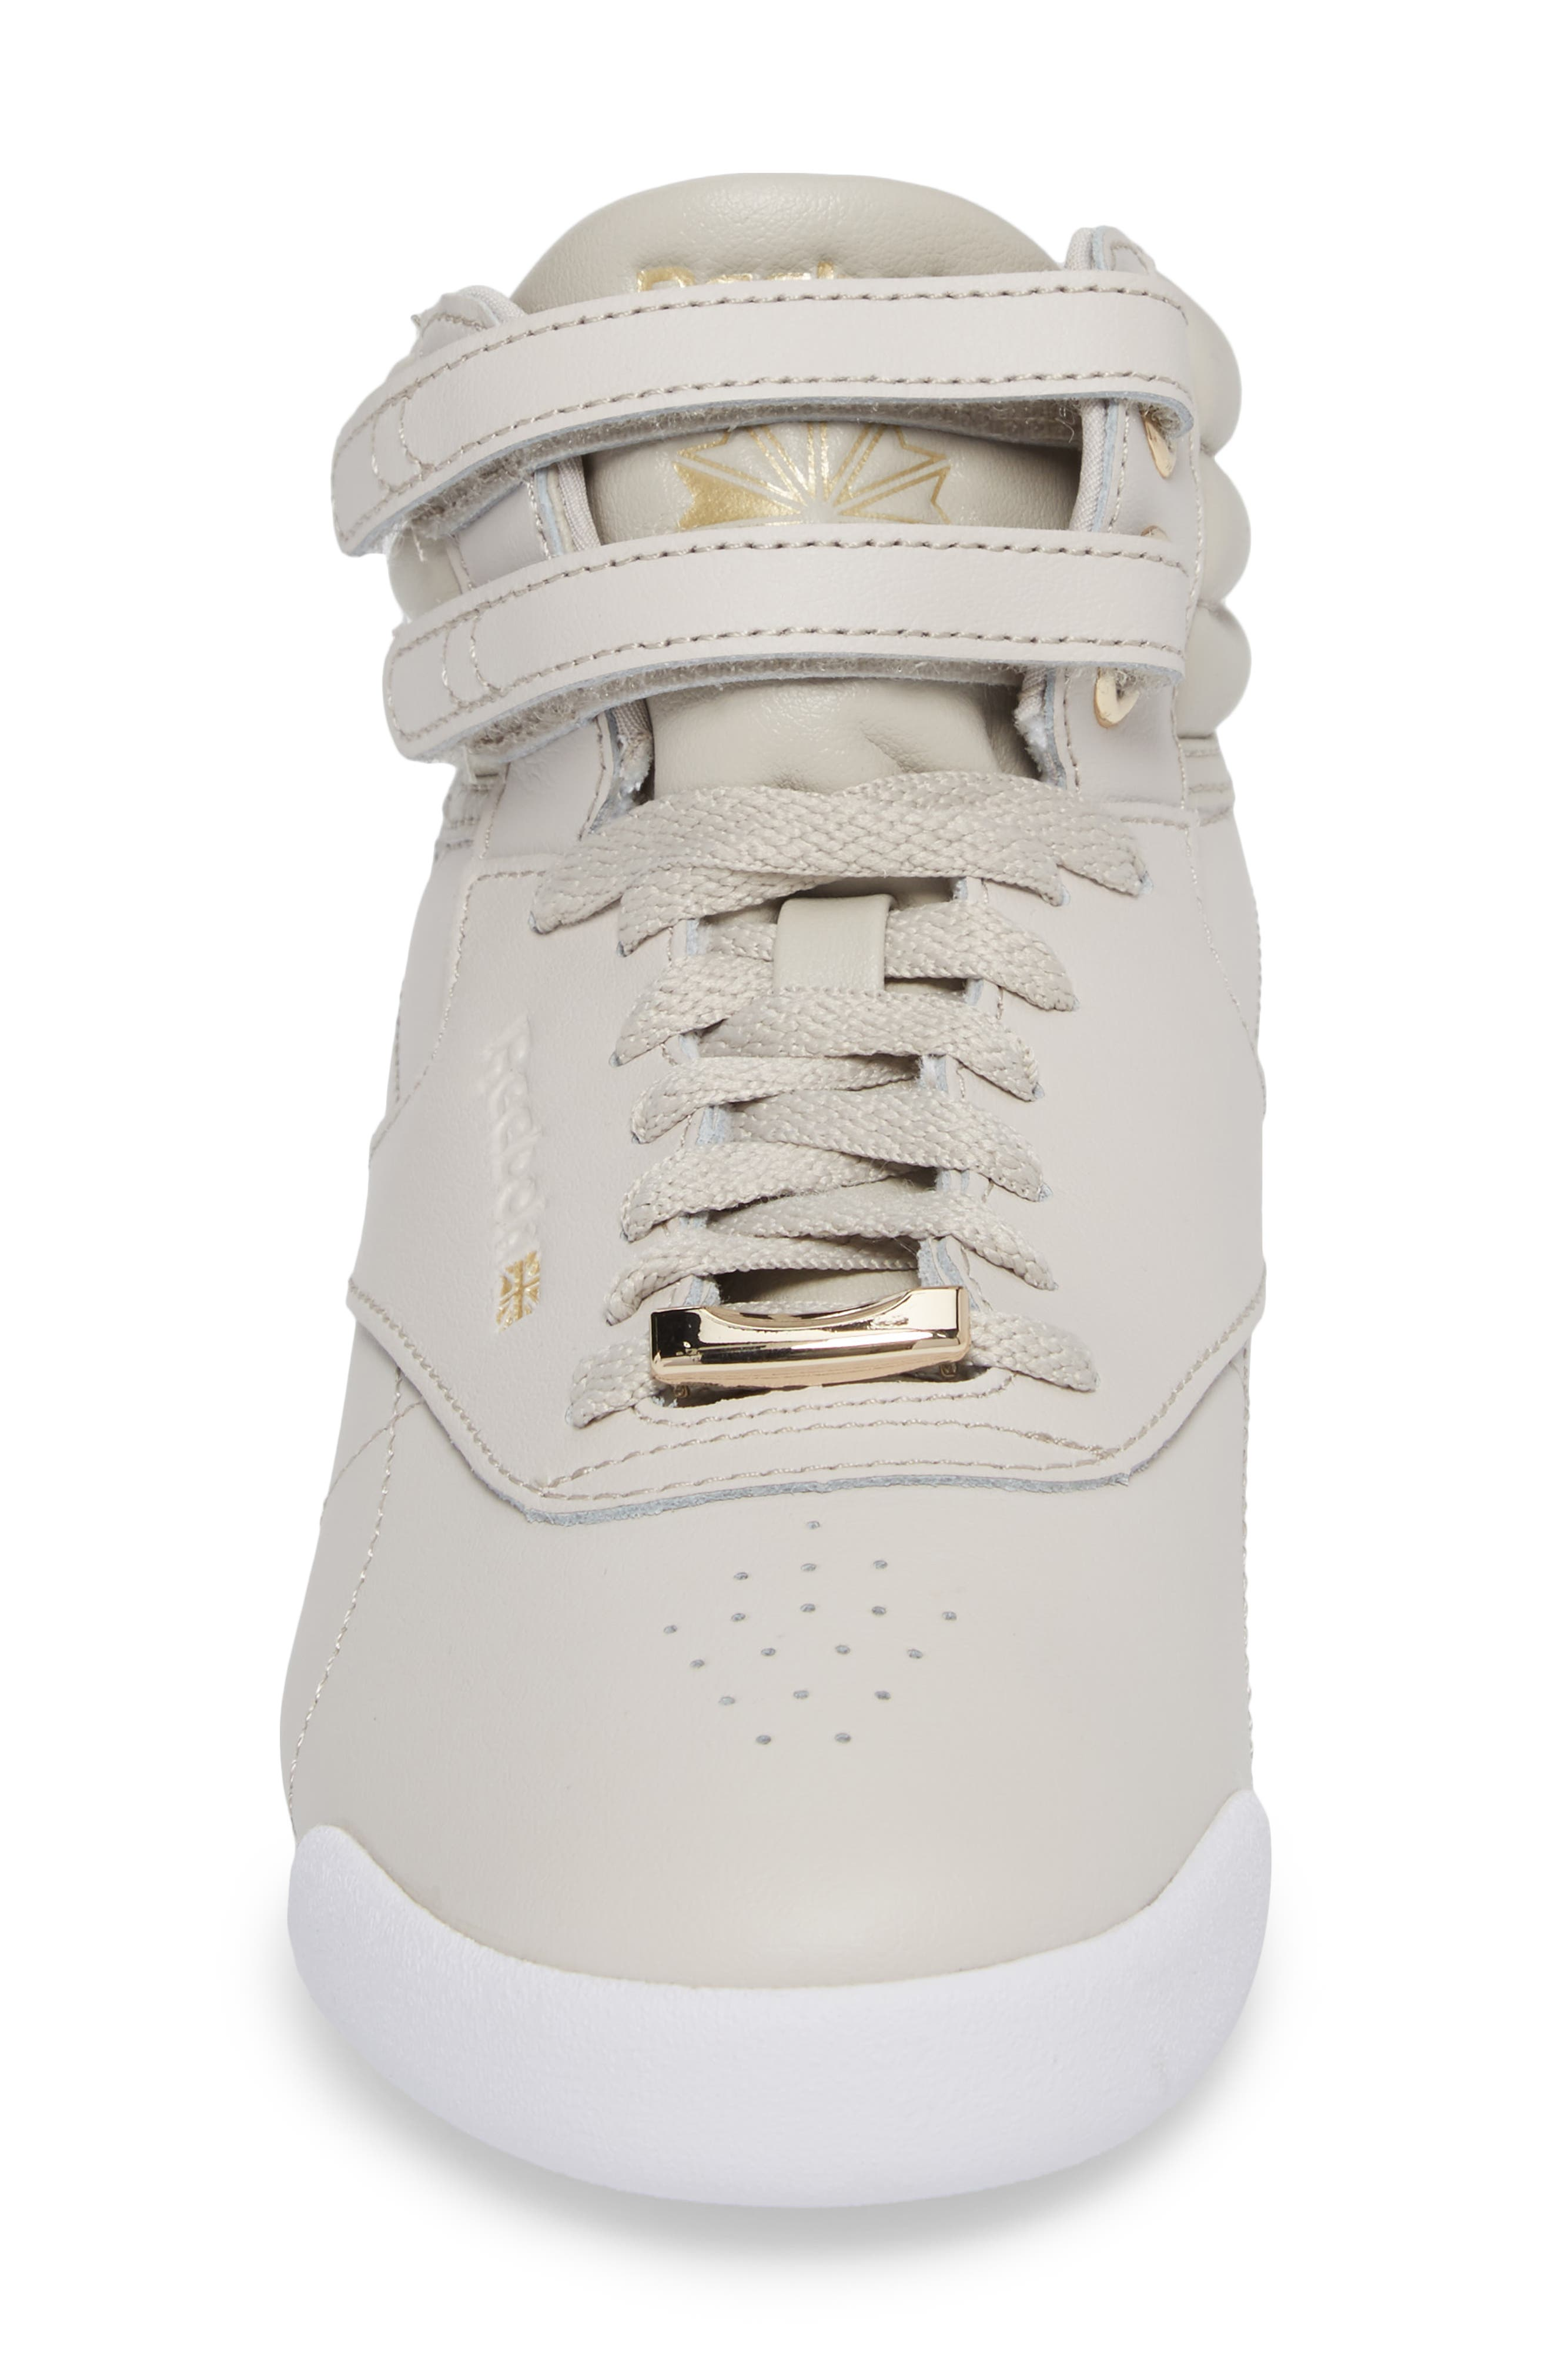 Freestyle Hi Muted Sneaker,                             Alternate thumbnail 4, color,                             Sandstone/ White